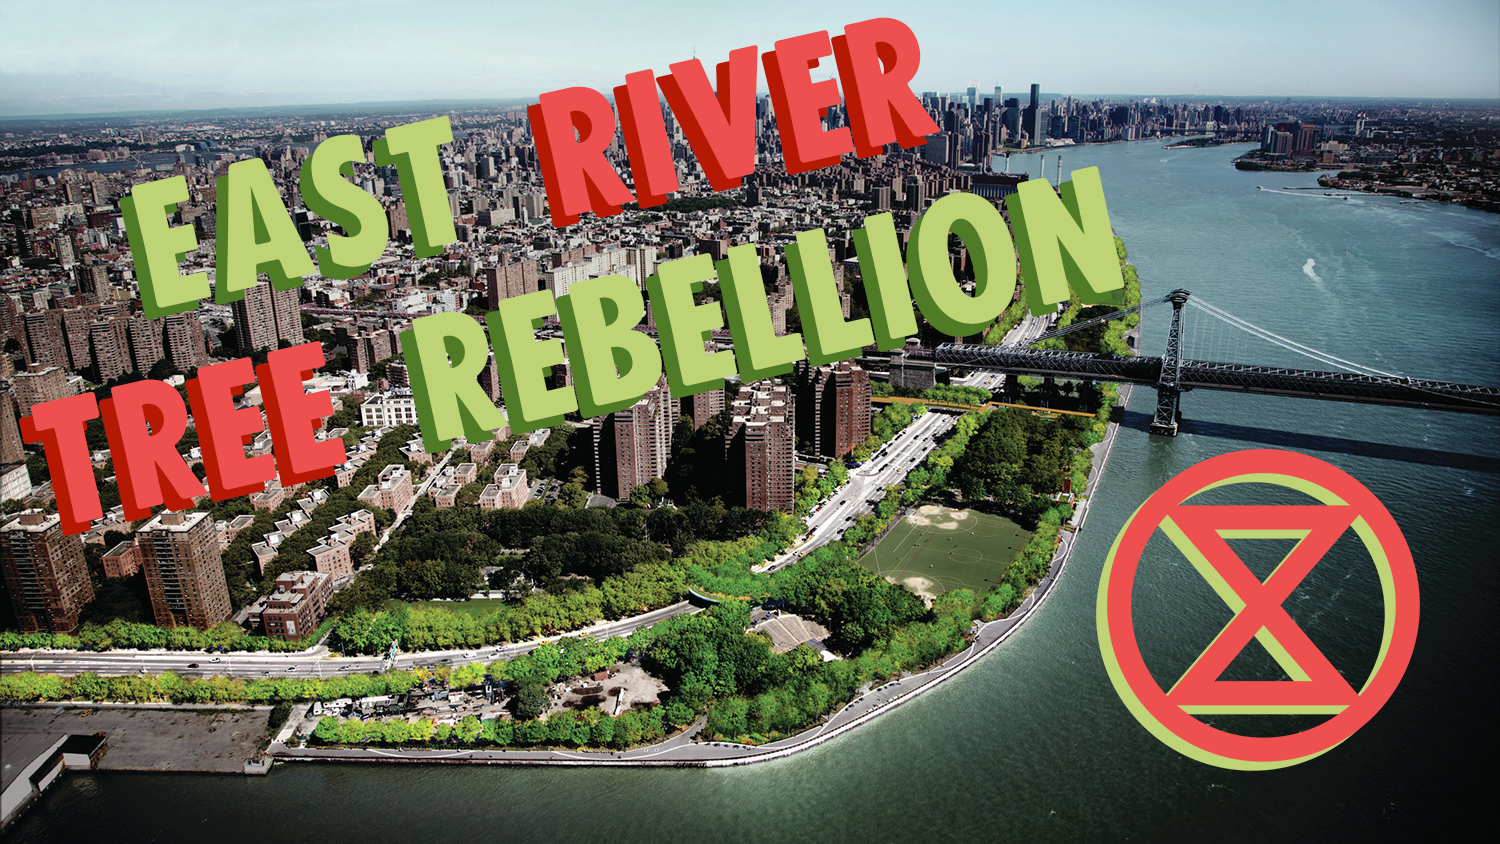 East_river_tree_rebellion_an